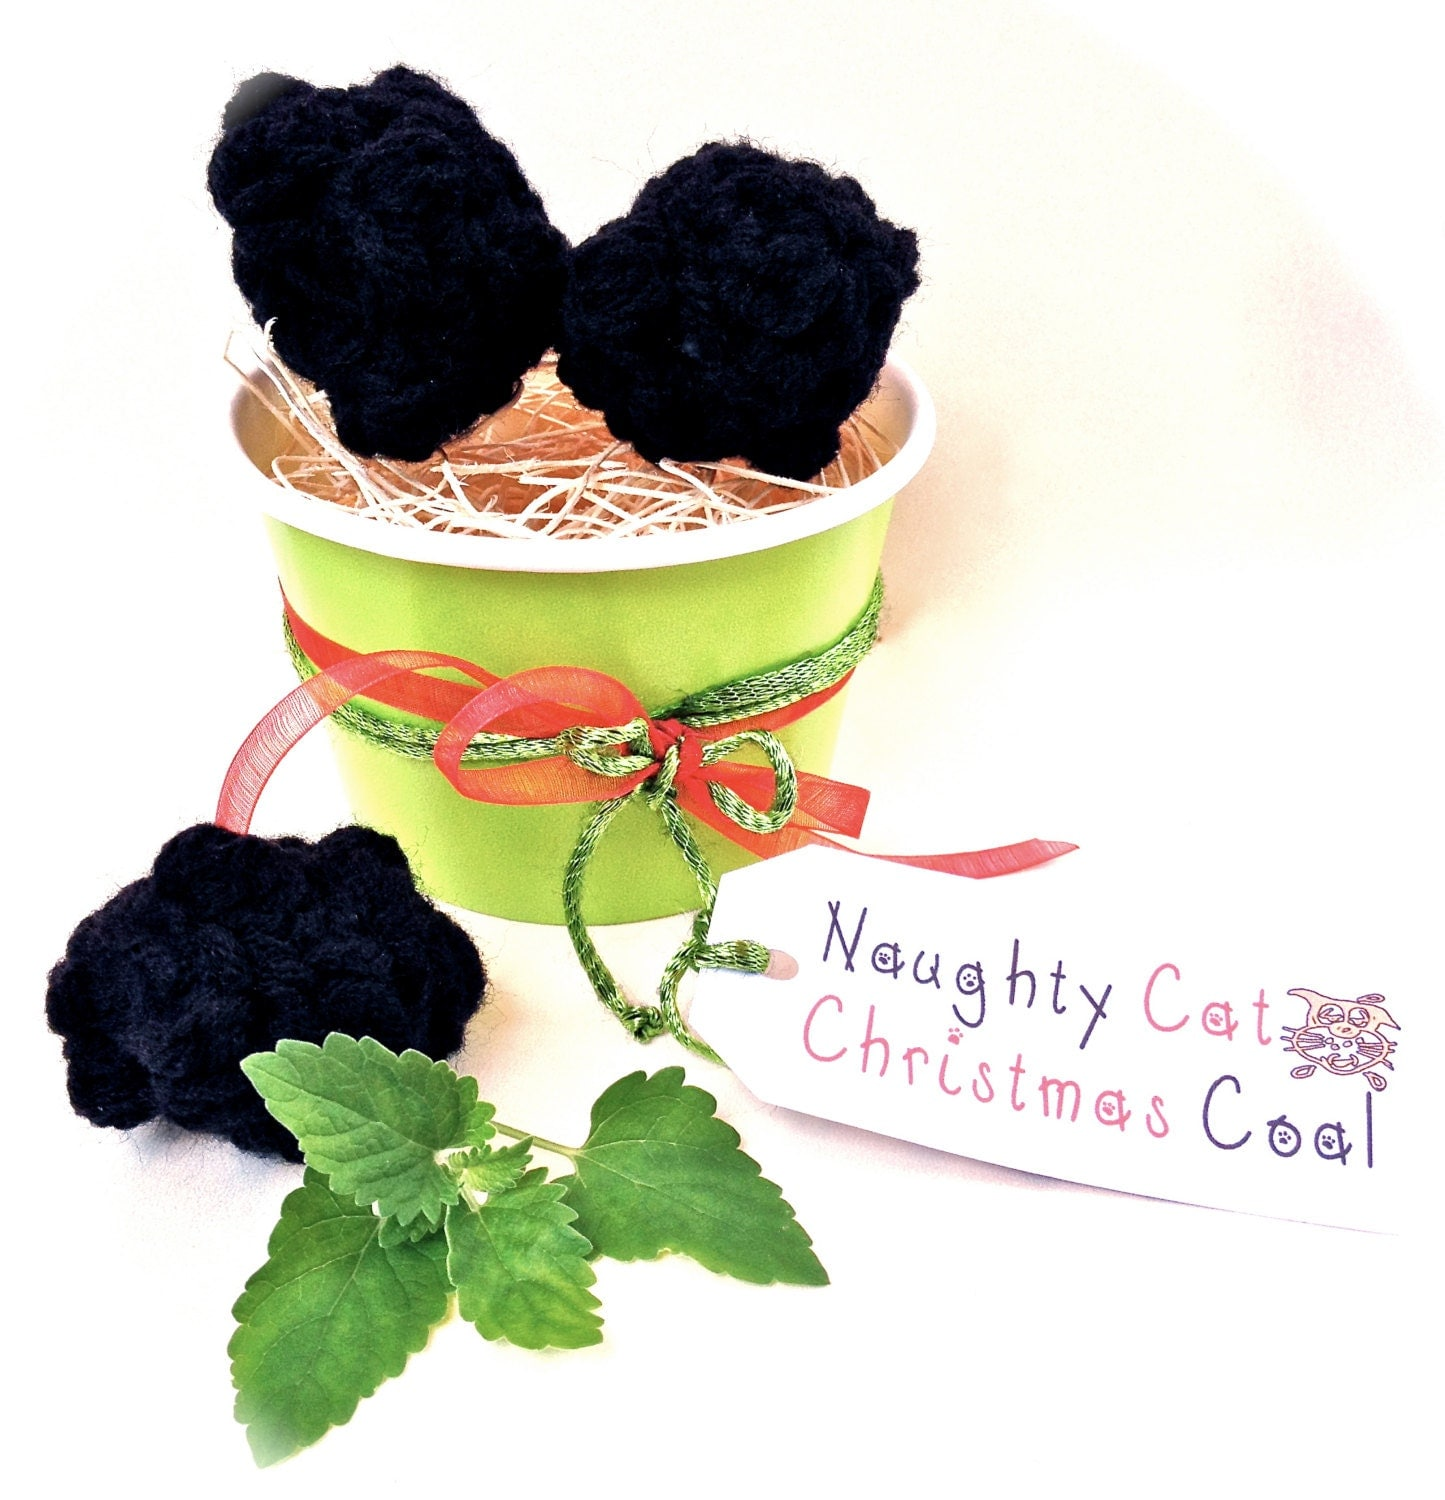 Naughty Cat Christmas Coal Holiday Cat Toy Pet Toy Christmas